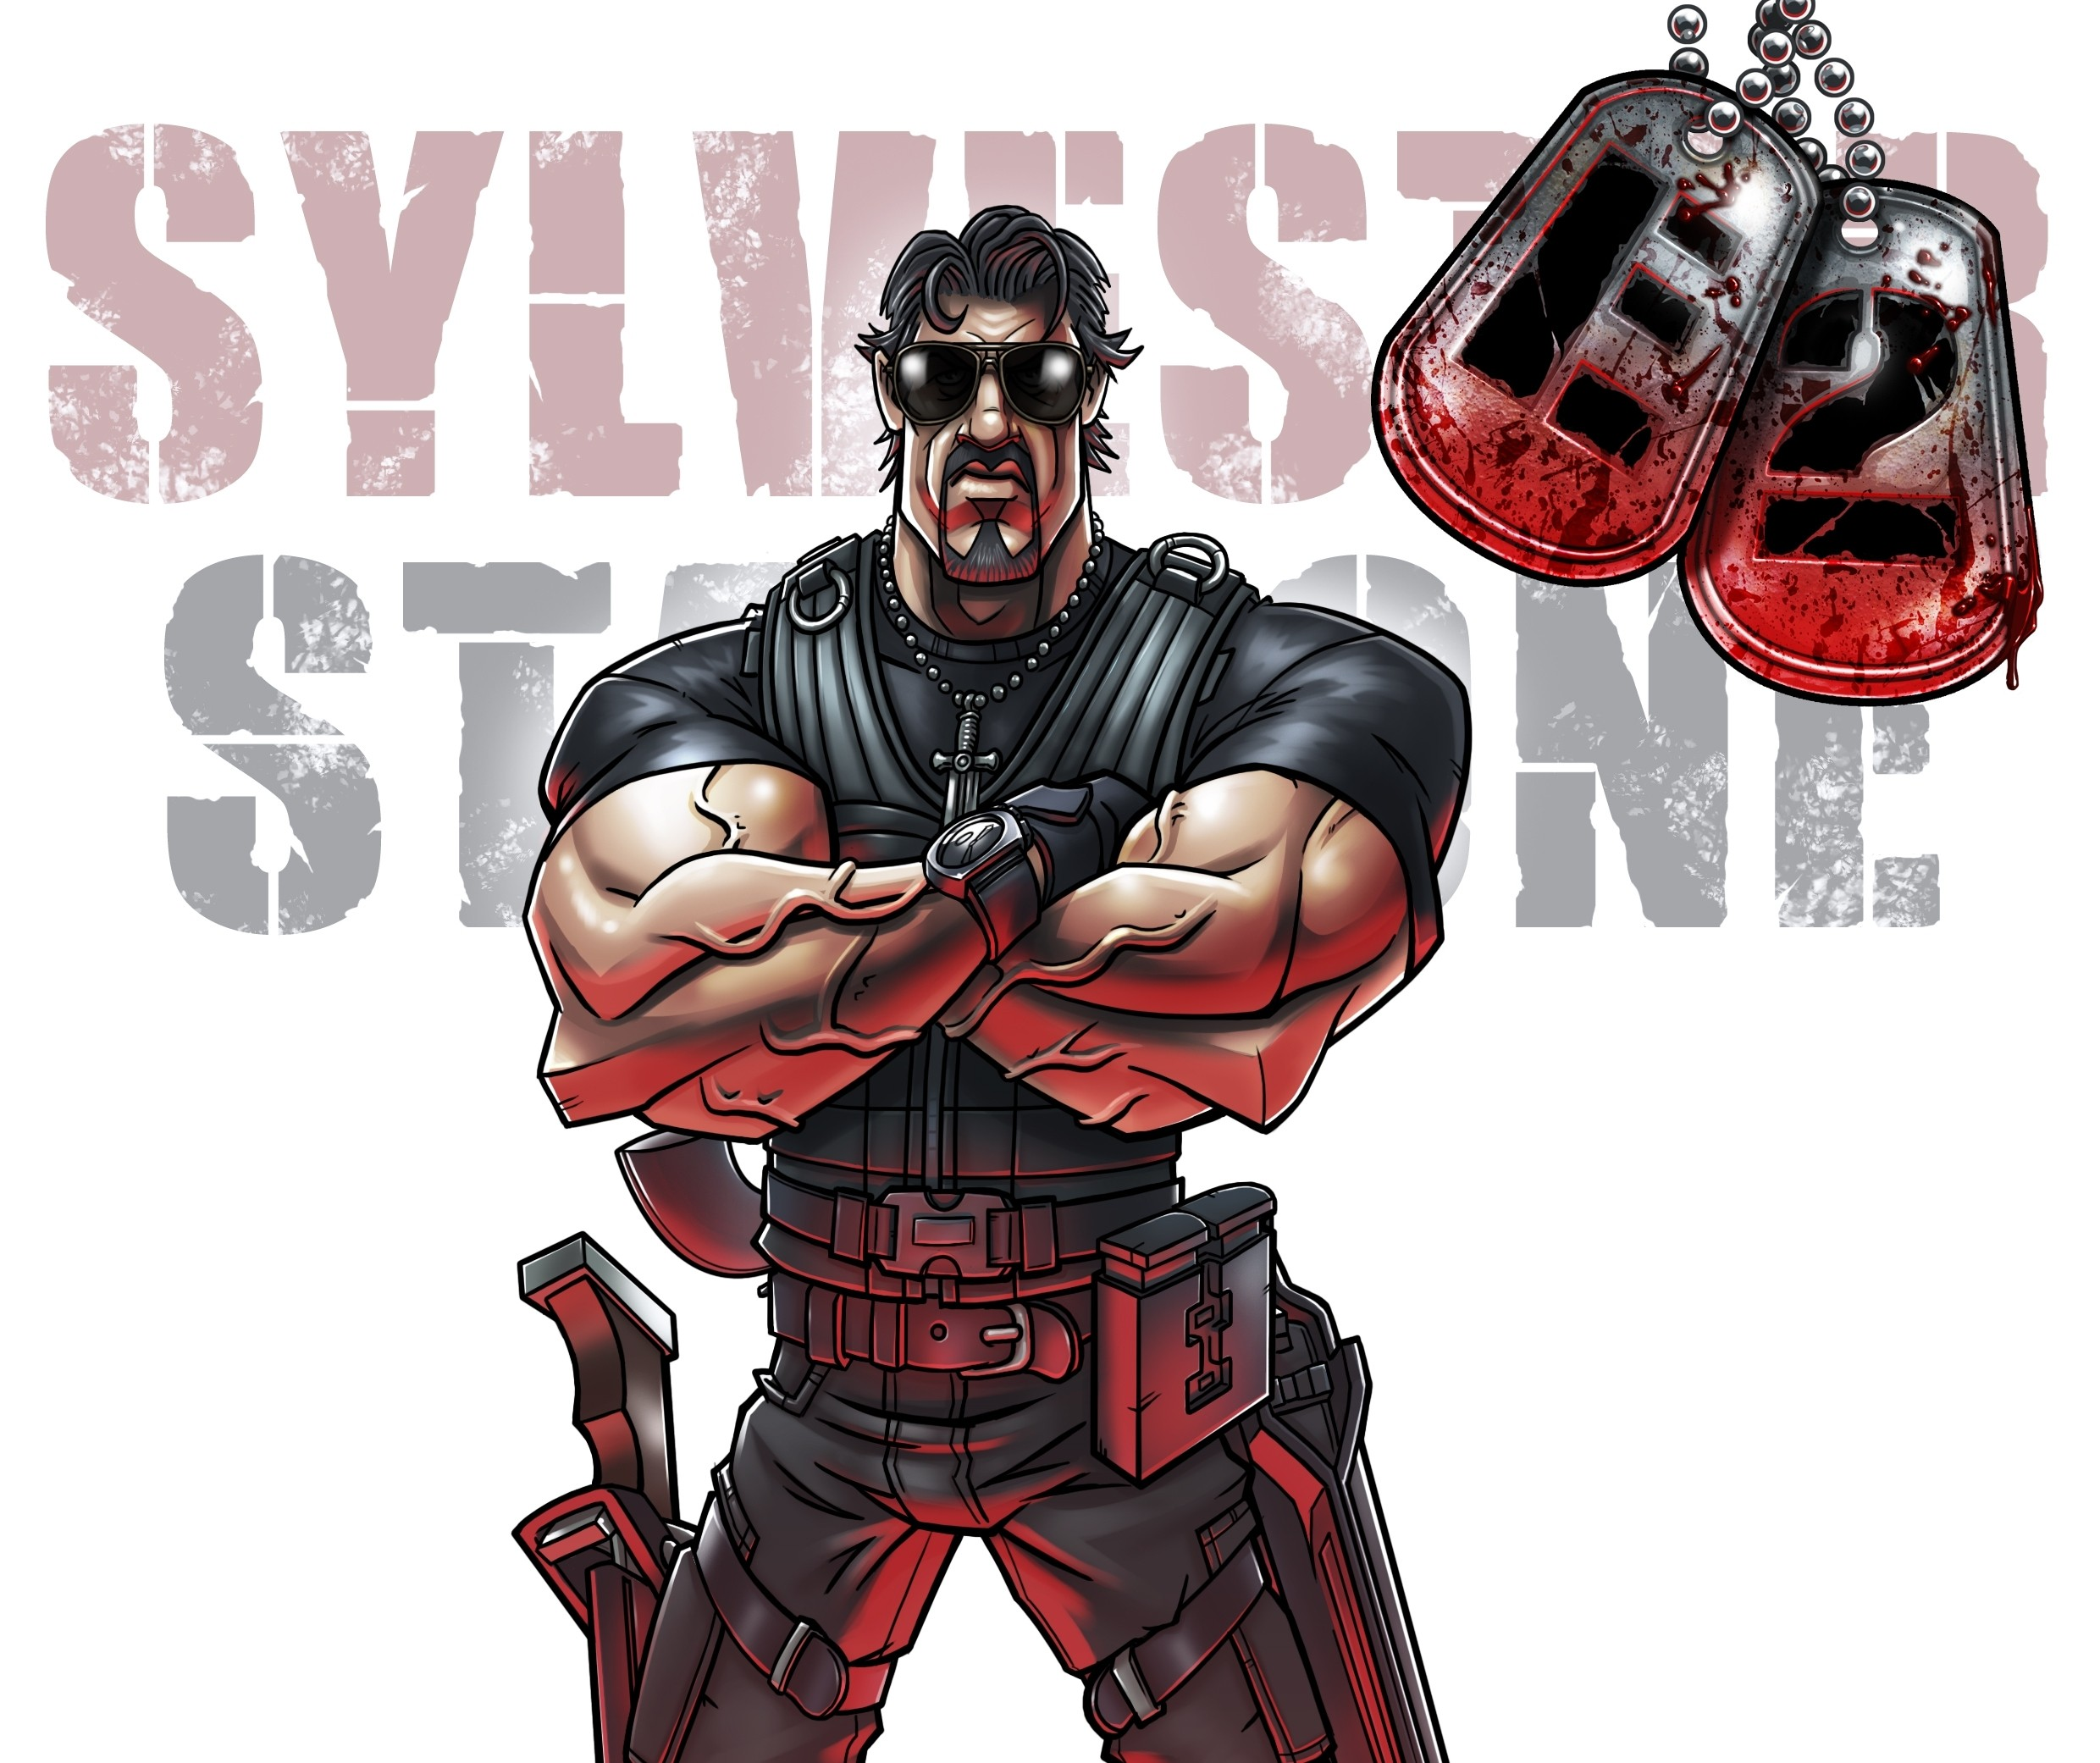 Popeye Wallpaper 3d Sylvester Stallone Drawing Movies The Expendables 2